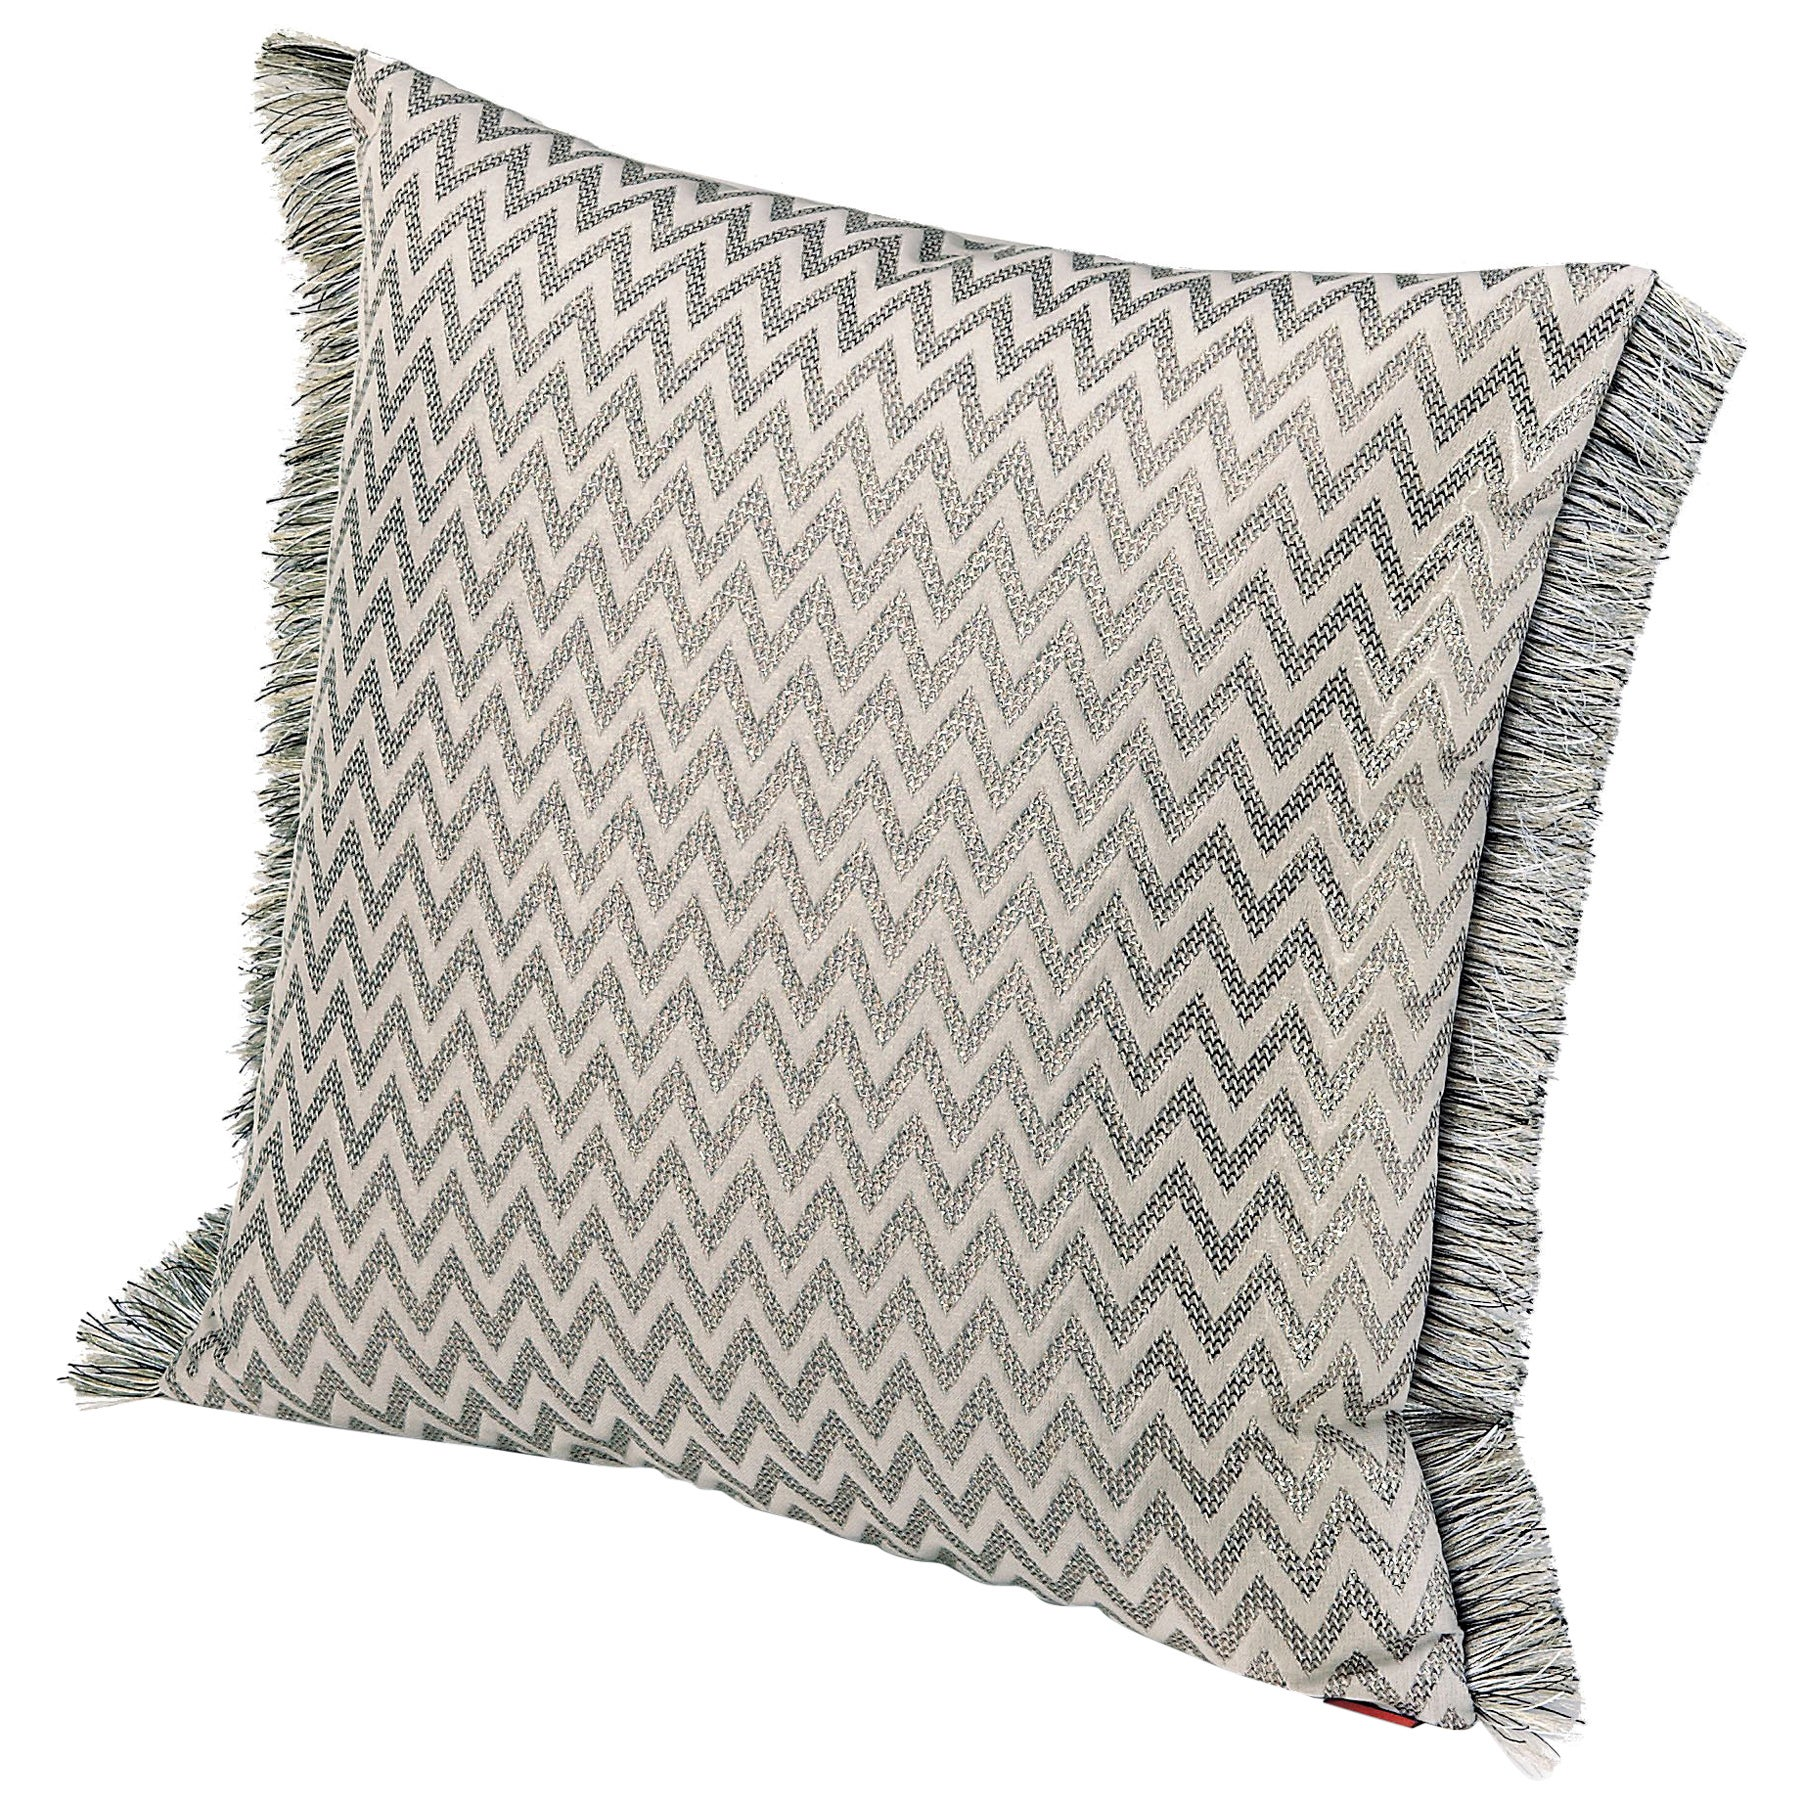 Missoni Home Stanford Cushion in Ivory & Silver Chevron Print with Fringe Trim